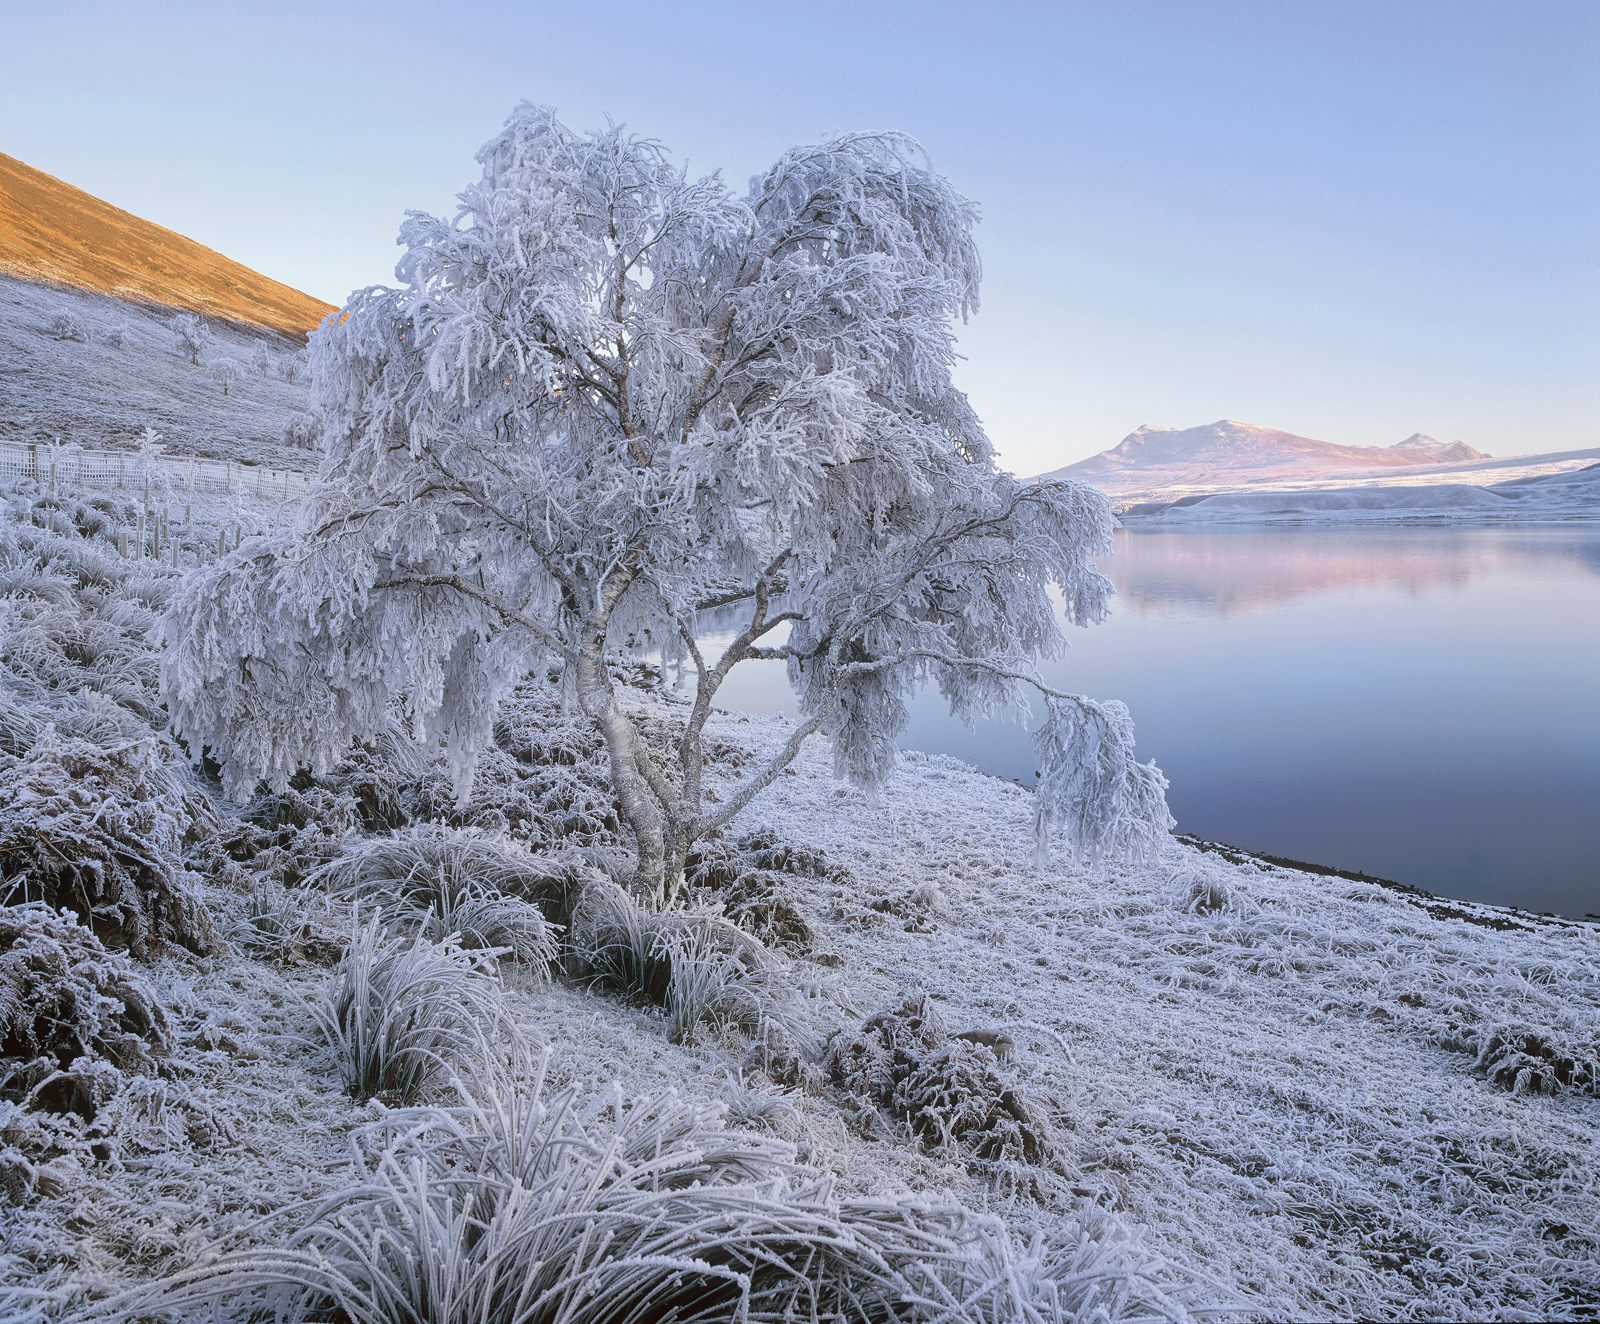 With temperatures plumetting to minus 23 degrees celcius and freezing fog settling over Loch a Chroisg I expected a savage hoar...